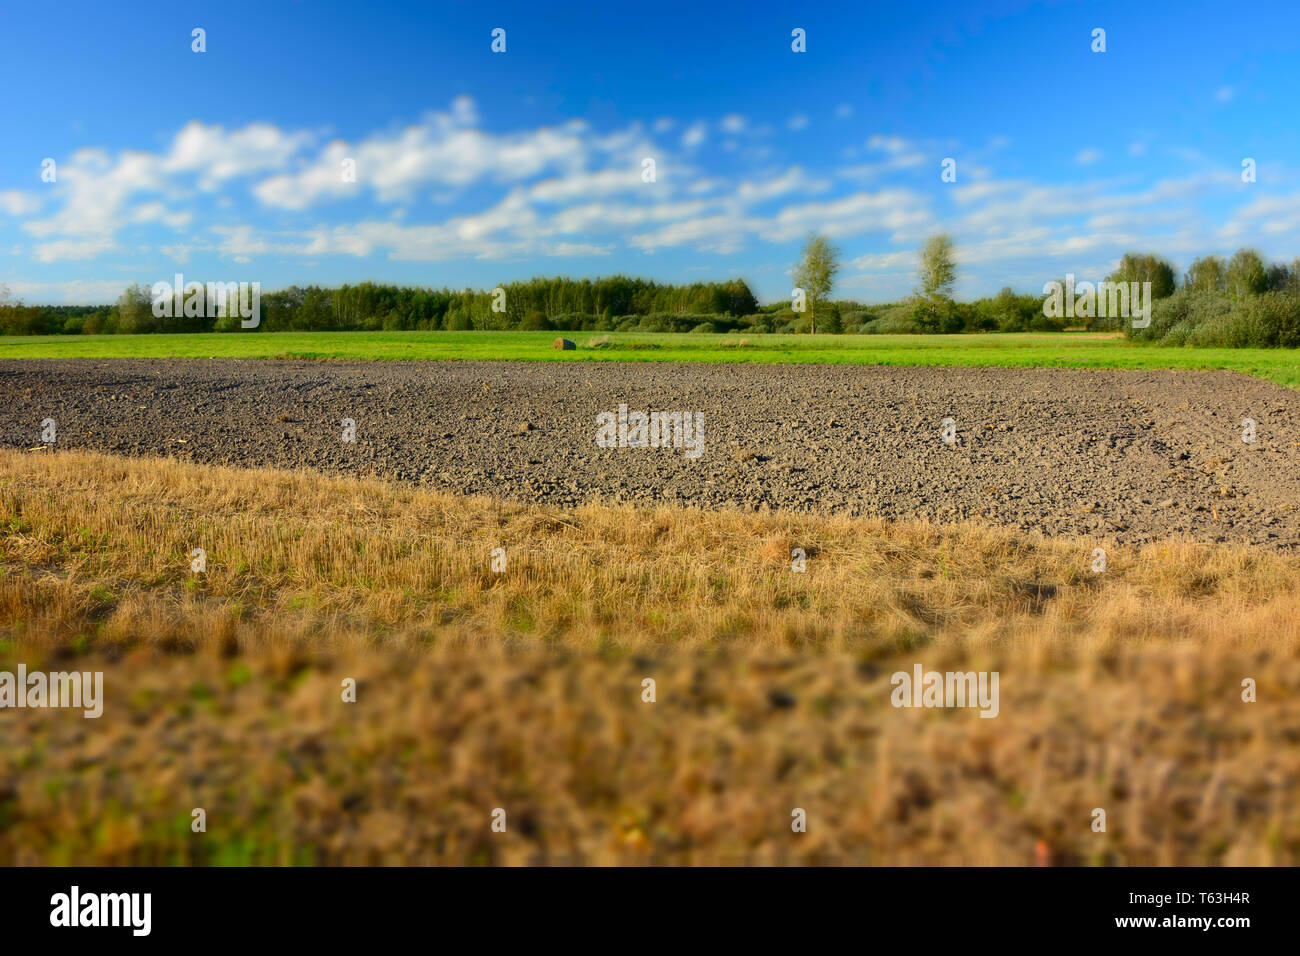 A large stubble field, plowed field, forest and white clouds on blue sky - blur and contrasting colors - Stock Image